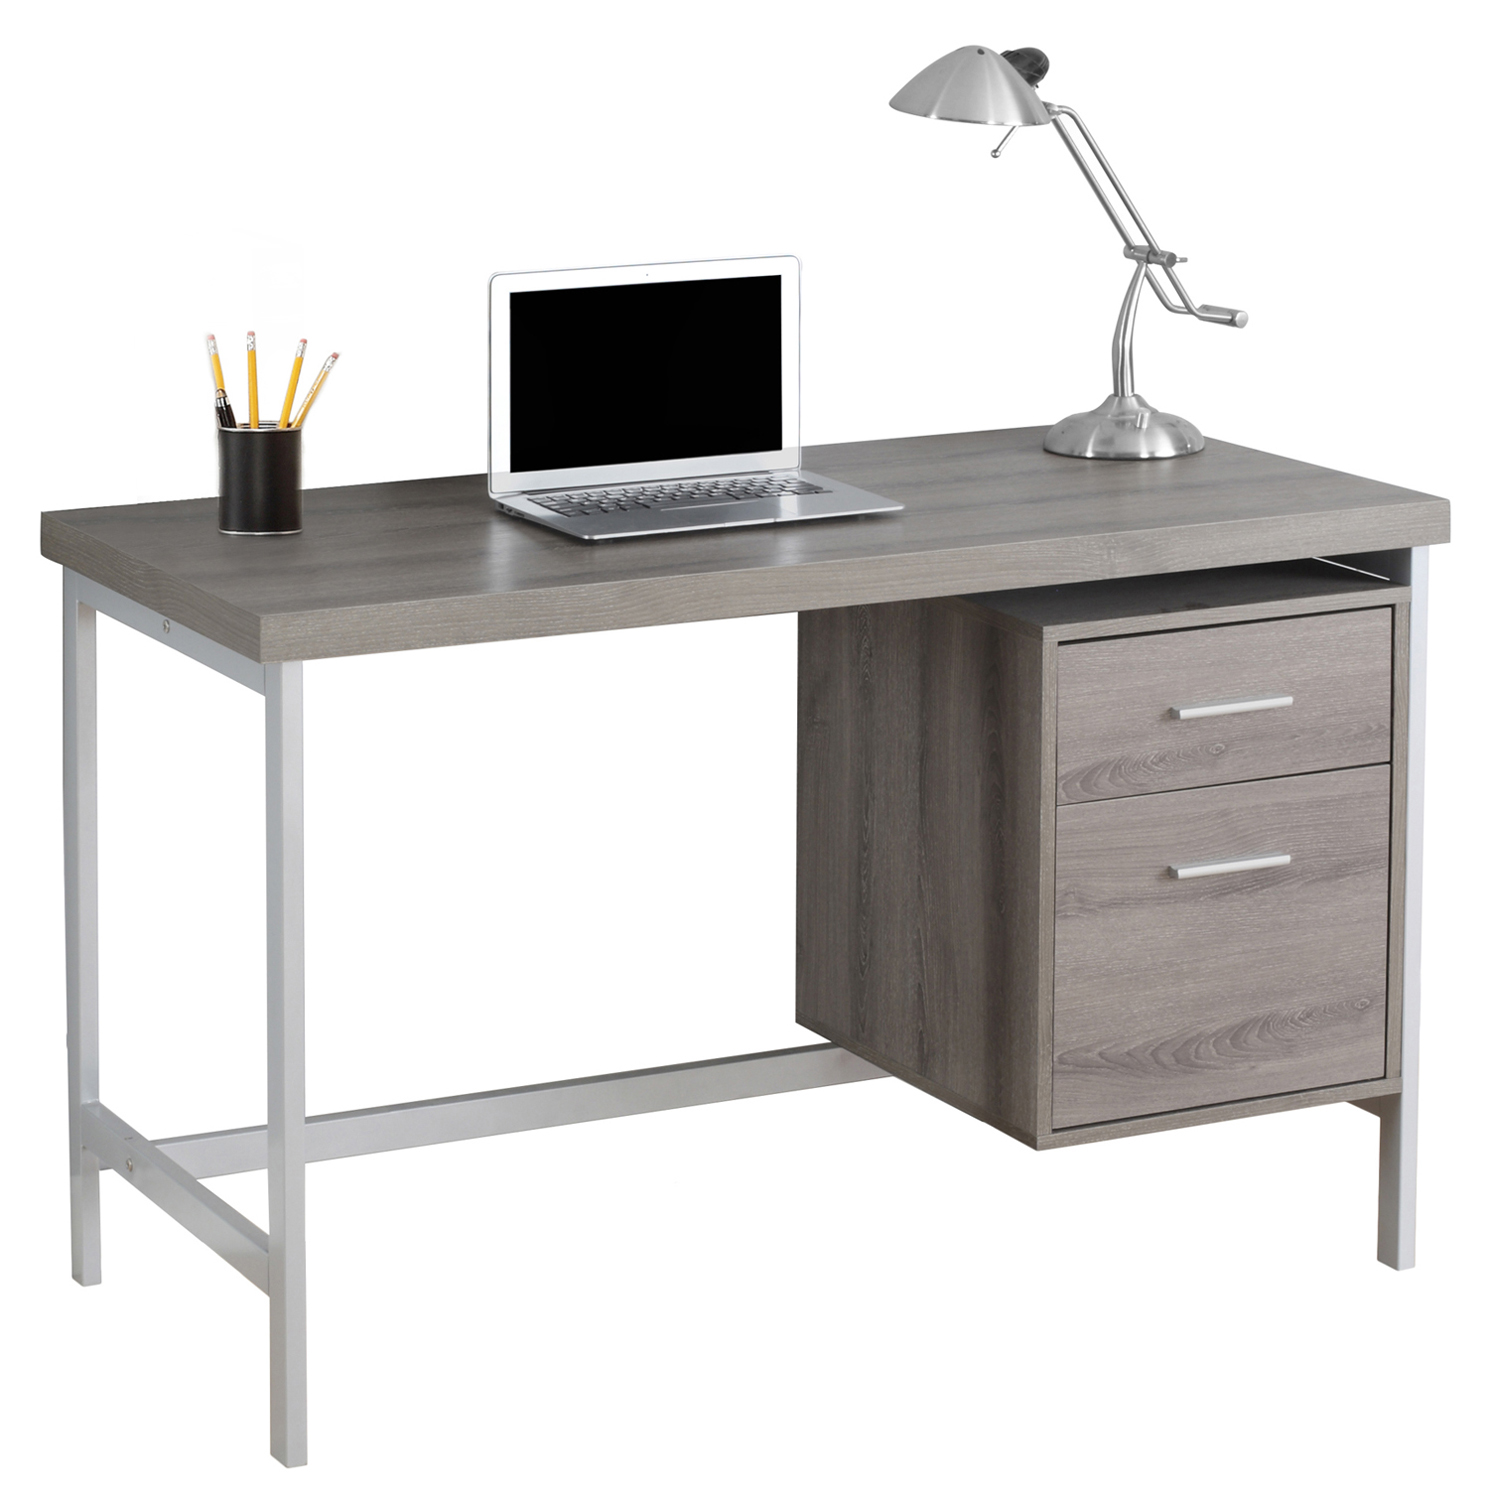 "48"" Computer Desk with Storage Drawers, Chrome Metal and Dark Taupe"